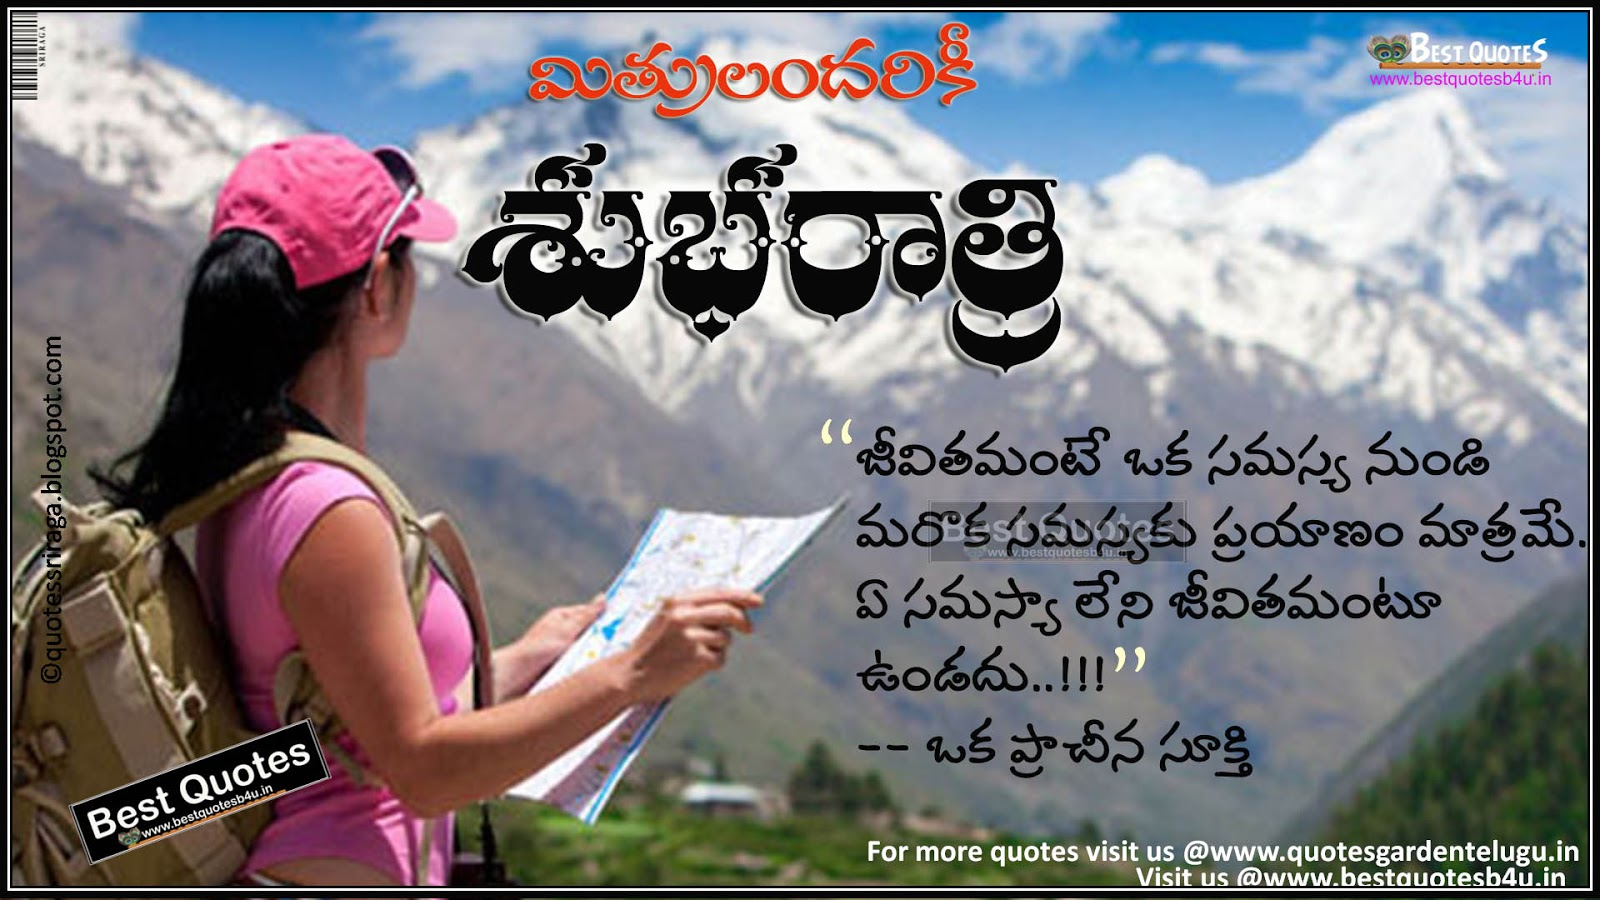 Beautiful Images With Quotes In Telugu   Wallpaper sportstle